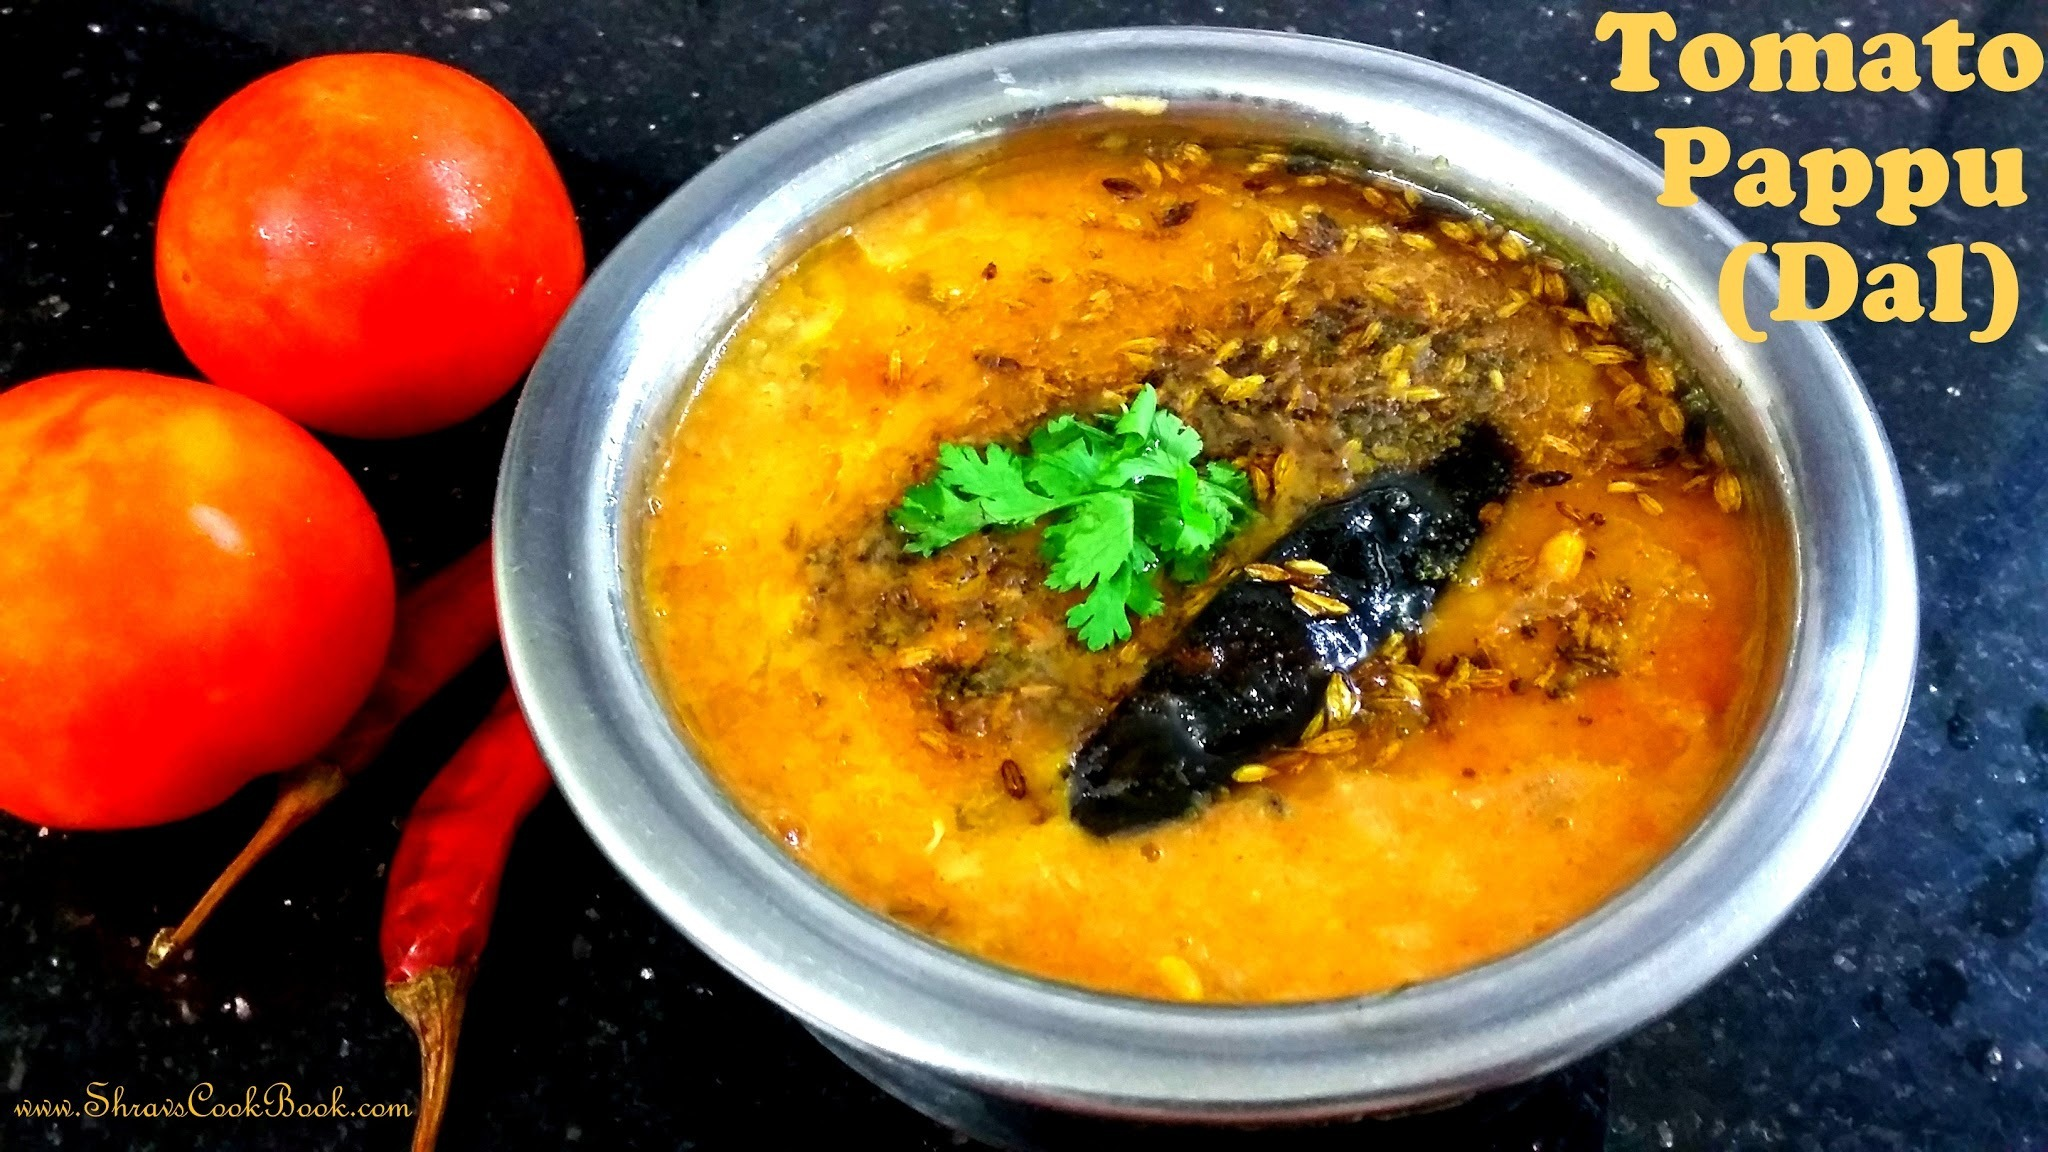 Tomato Pappu (Dal) Recipe in Telugu - How to make Tomato Pappu (Andhra Style) in Pressure Cooker